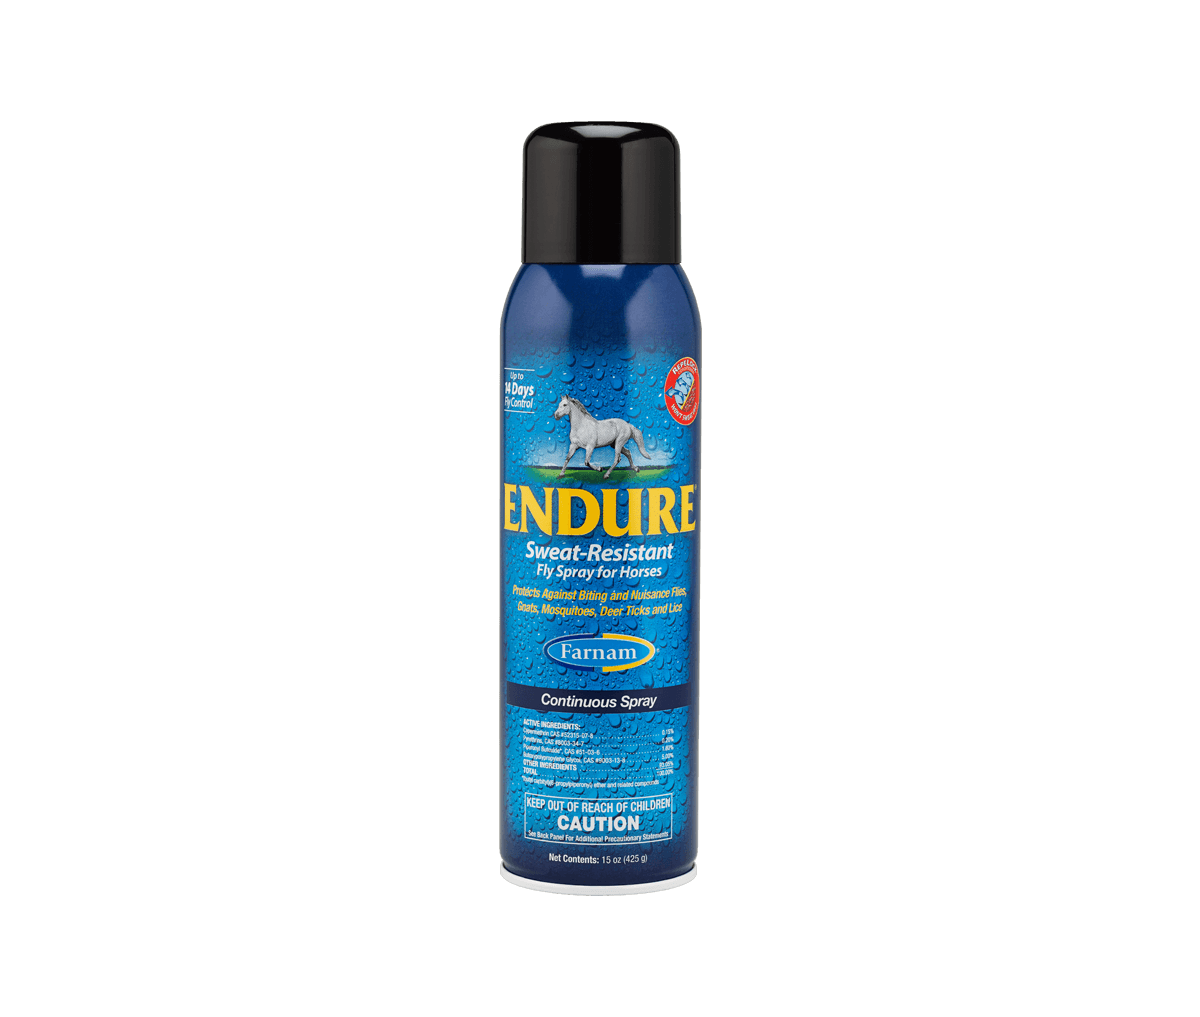 Endure Sweat Resistant Fly Spray now available in a continuous spray format